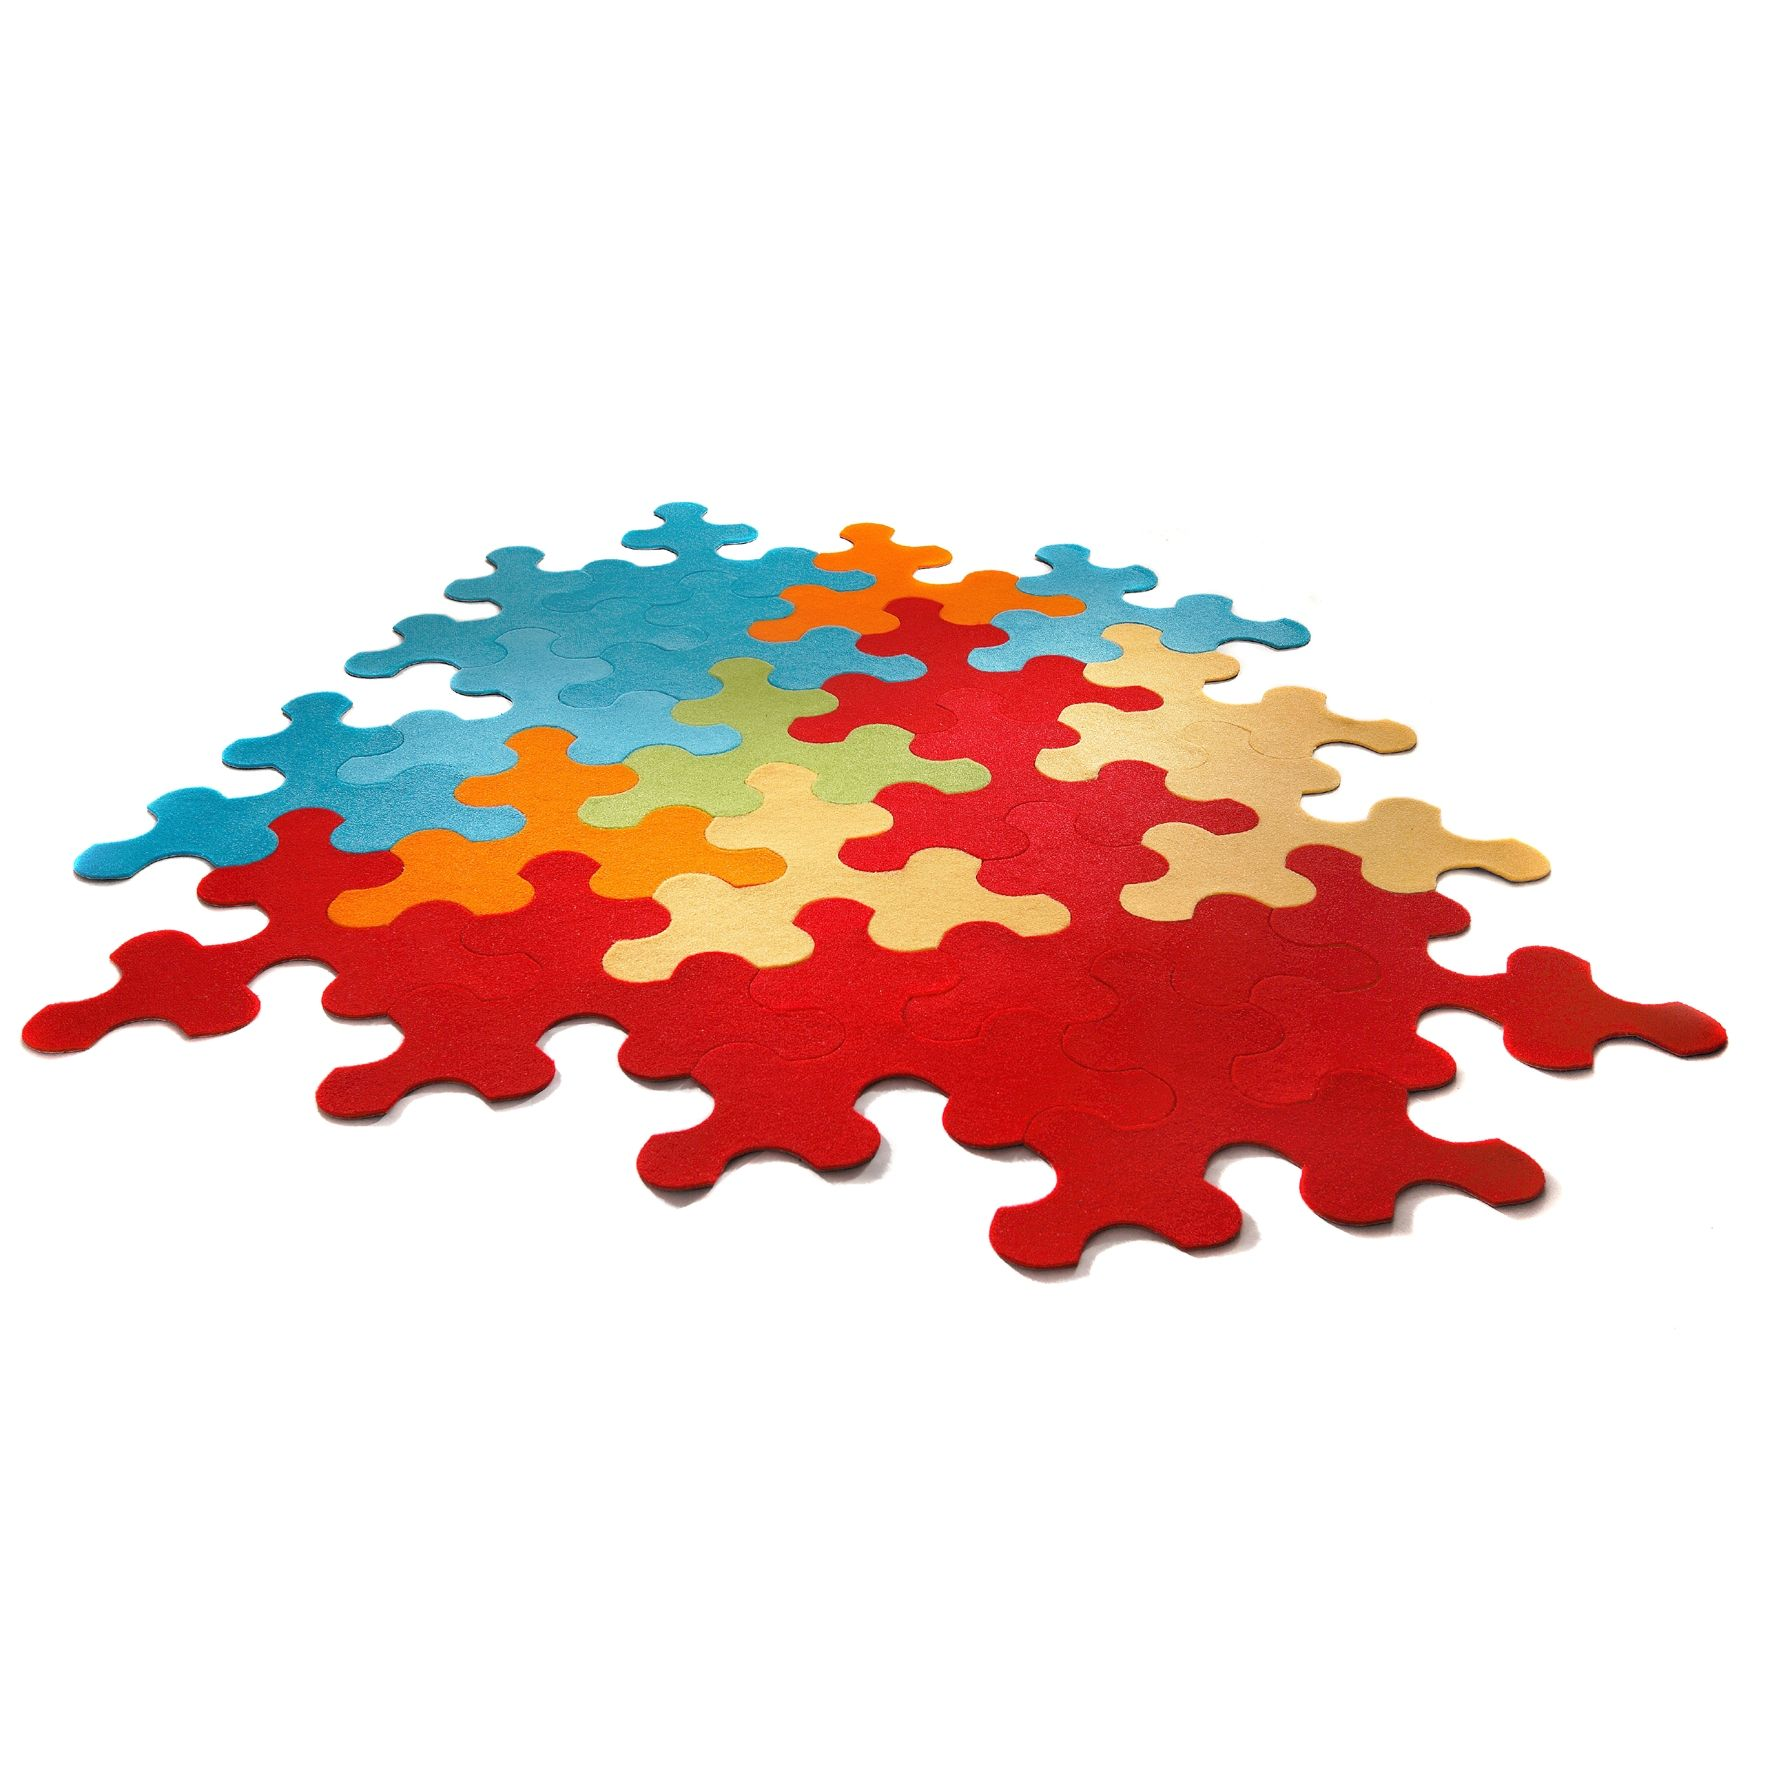 Puzzle Rug Imperial Interlocking Carpet Tiles Shaped Like Jigsaw Pieces 10 To A Box And You Can Choose As Many Of Each Color Want In The